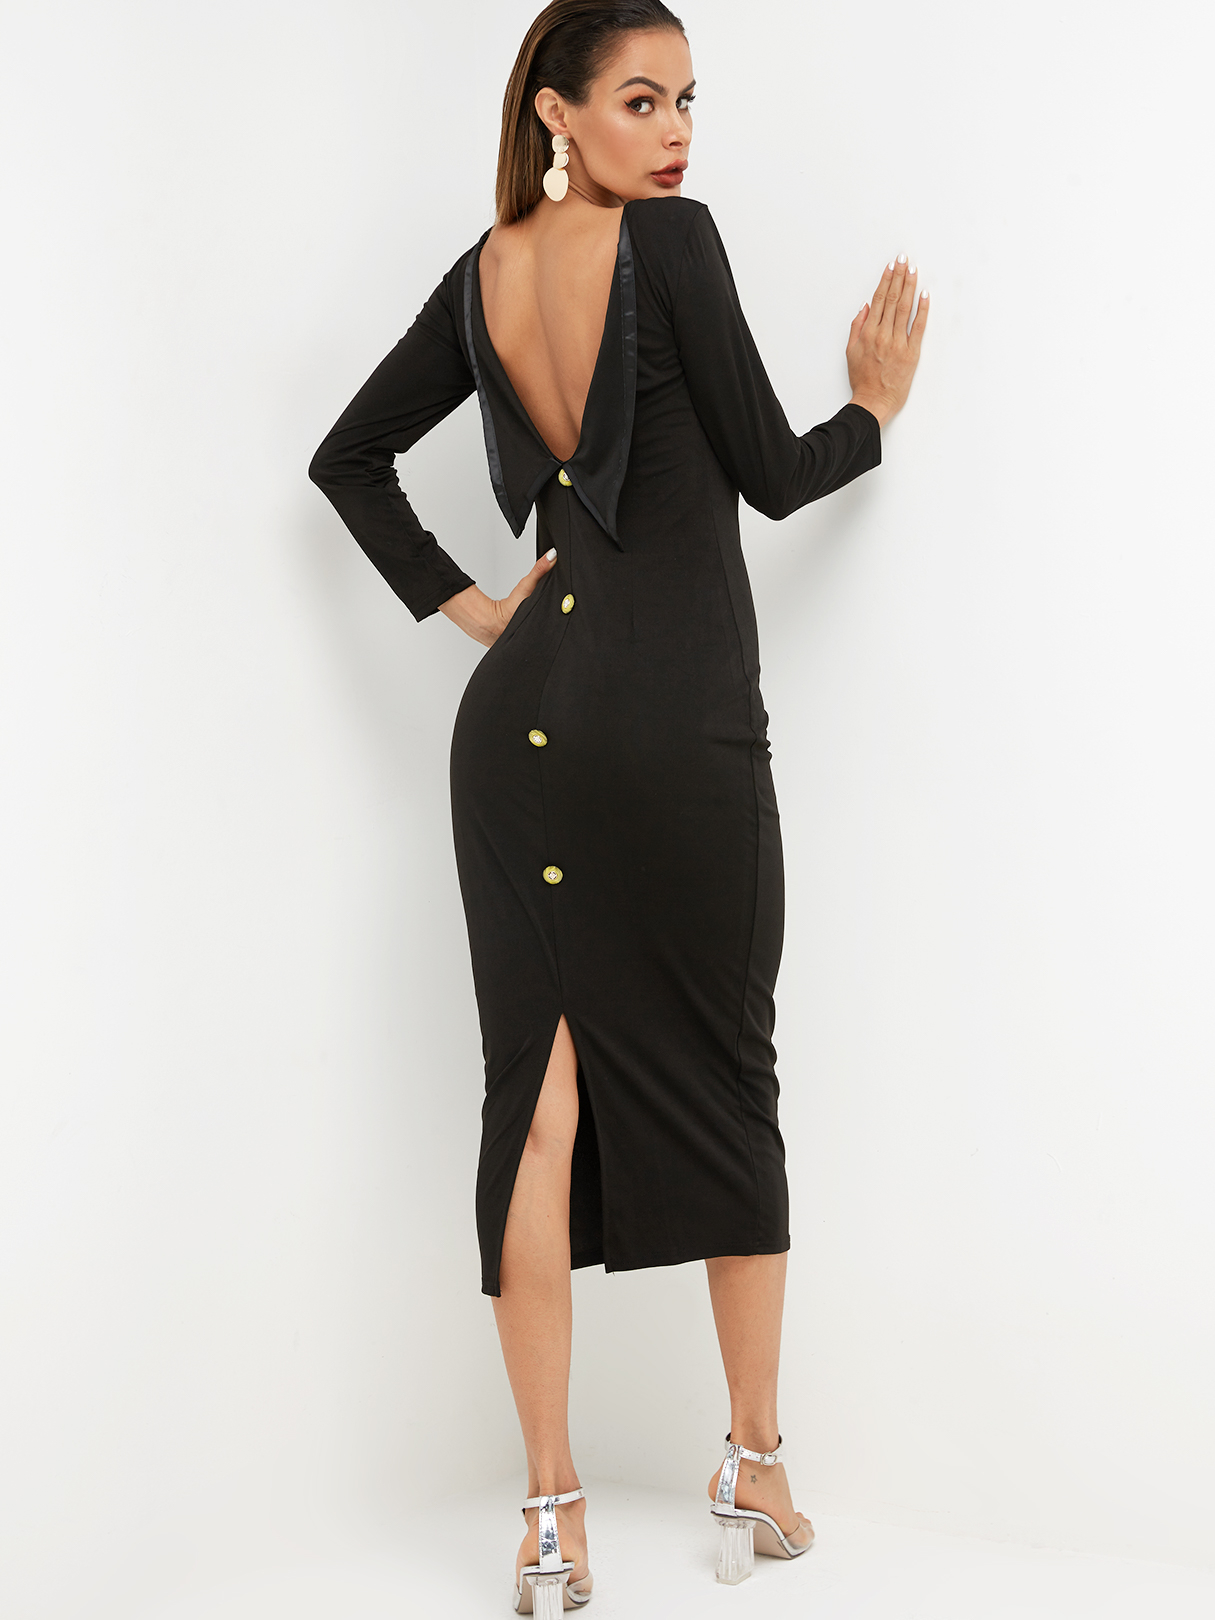 Backless Design Round Neck Long Sleeves Dress in Black